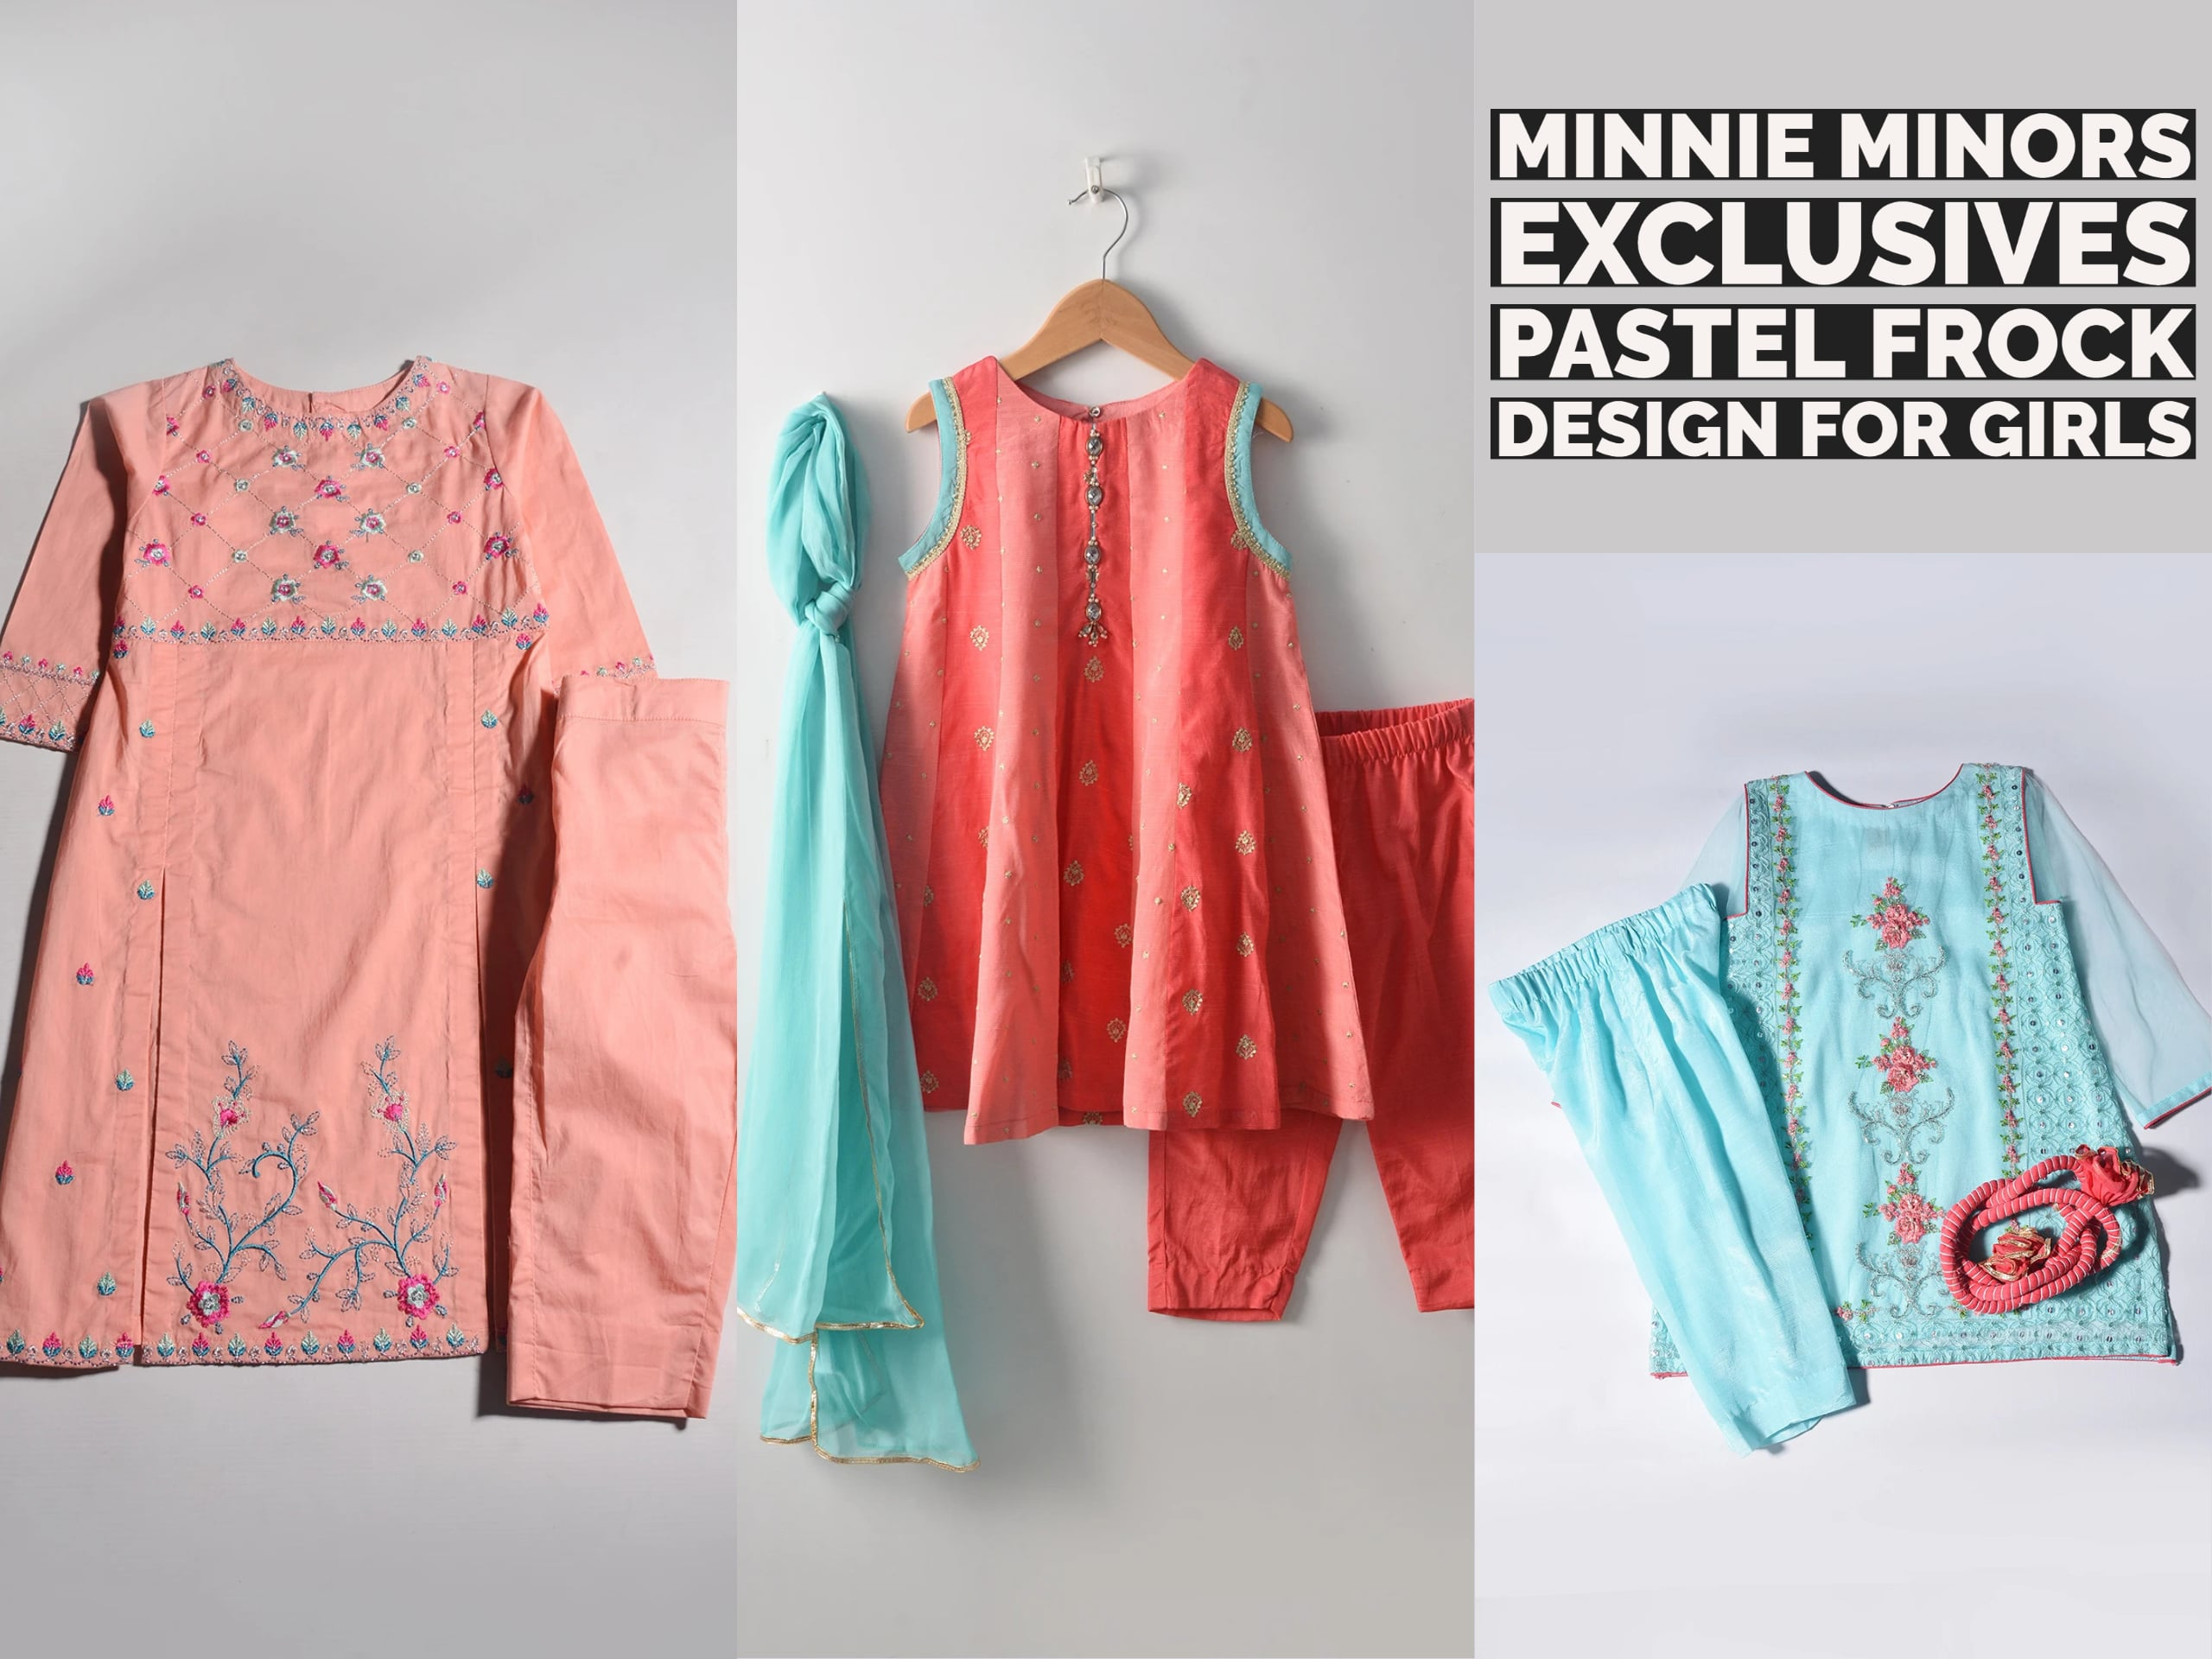 Minnie Minors Exclusives: Pastel Frock Design For Girls